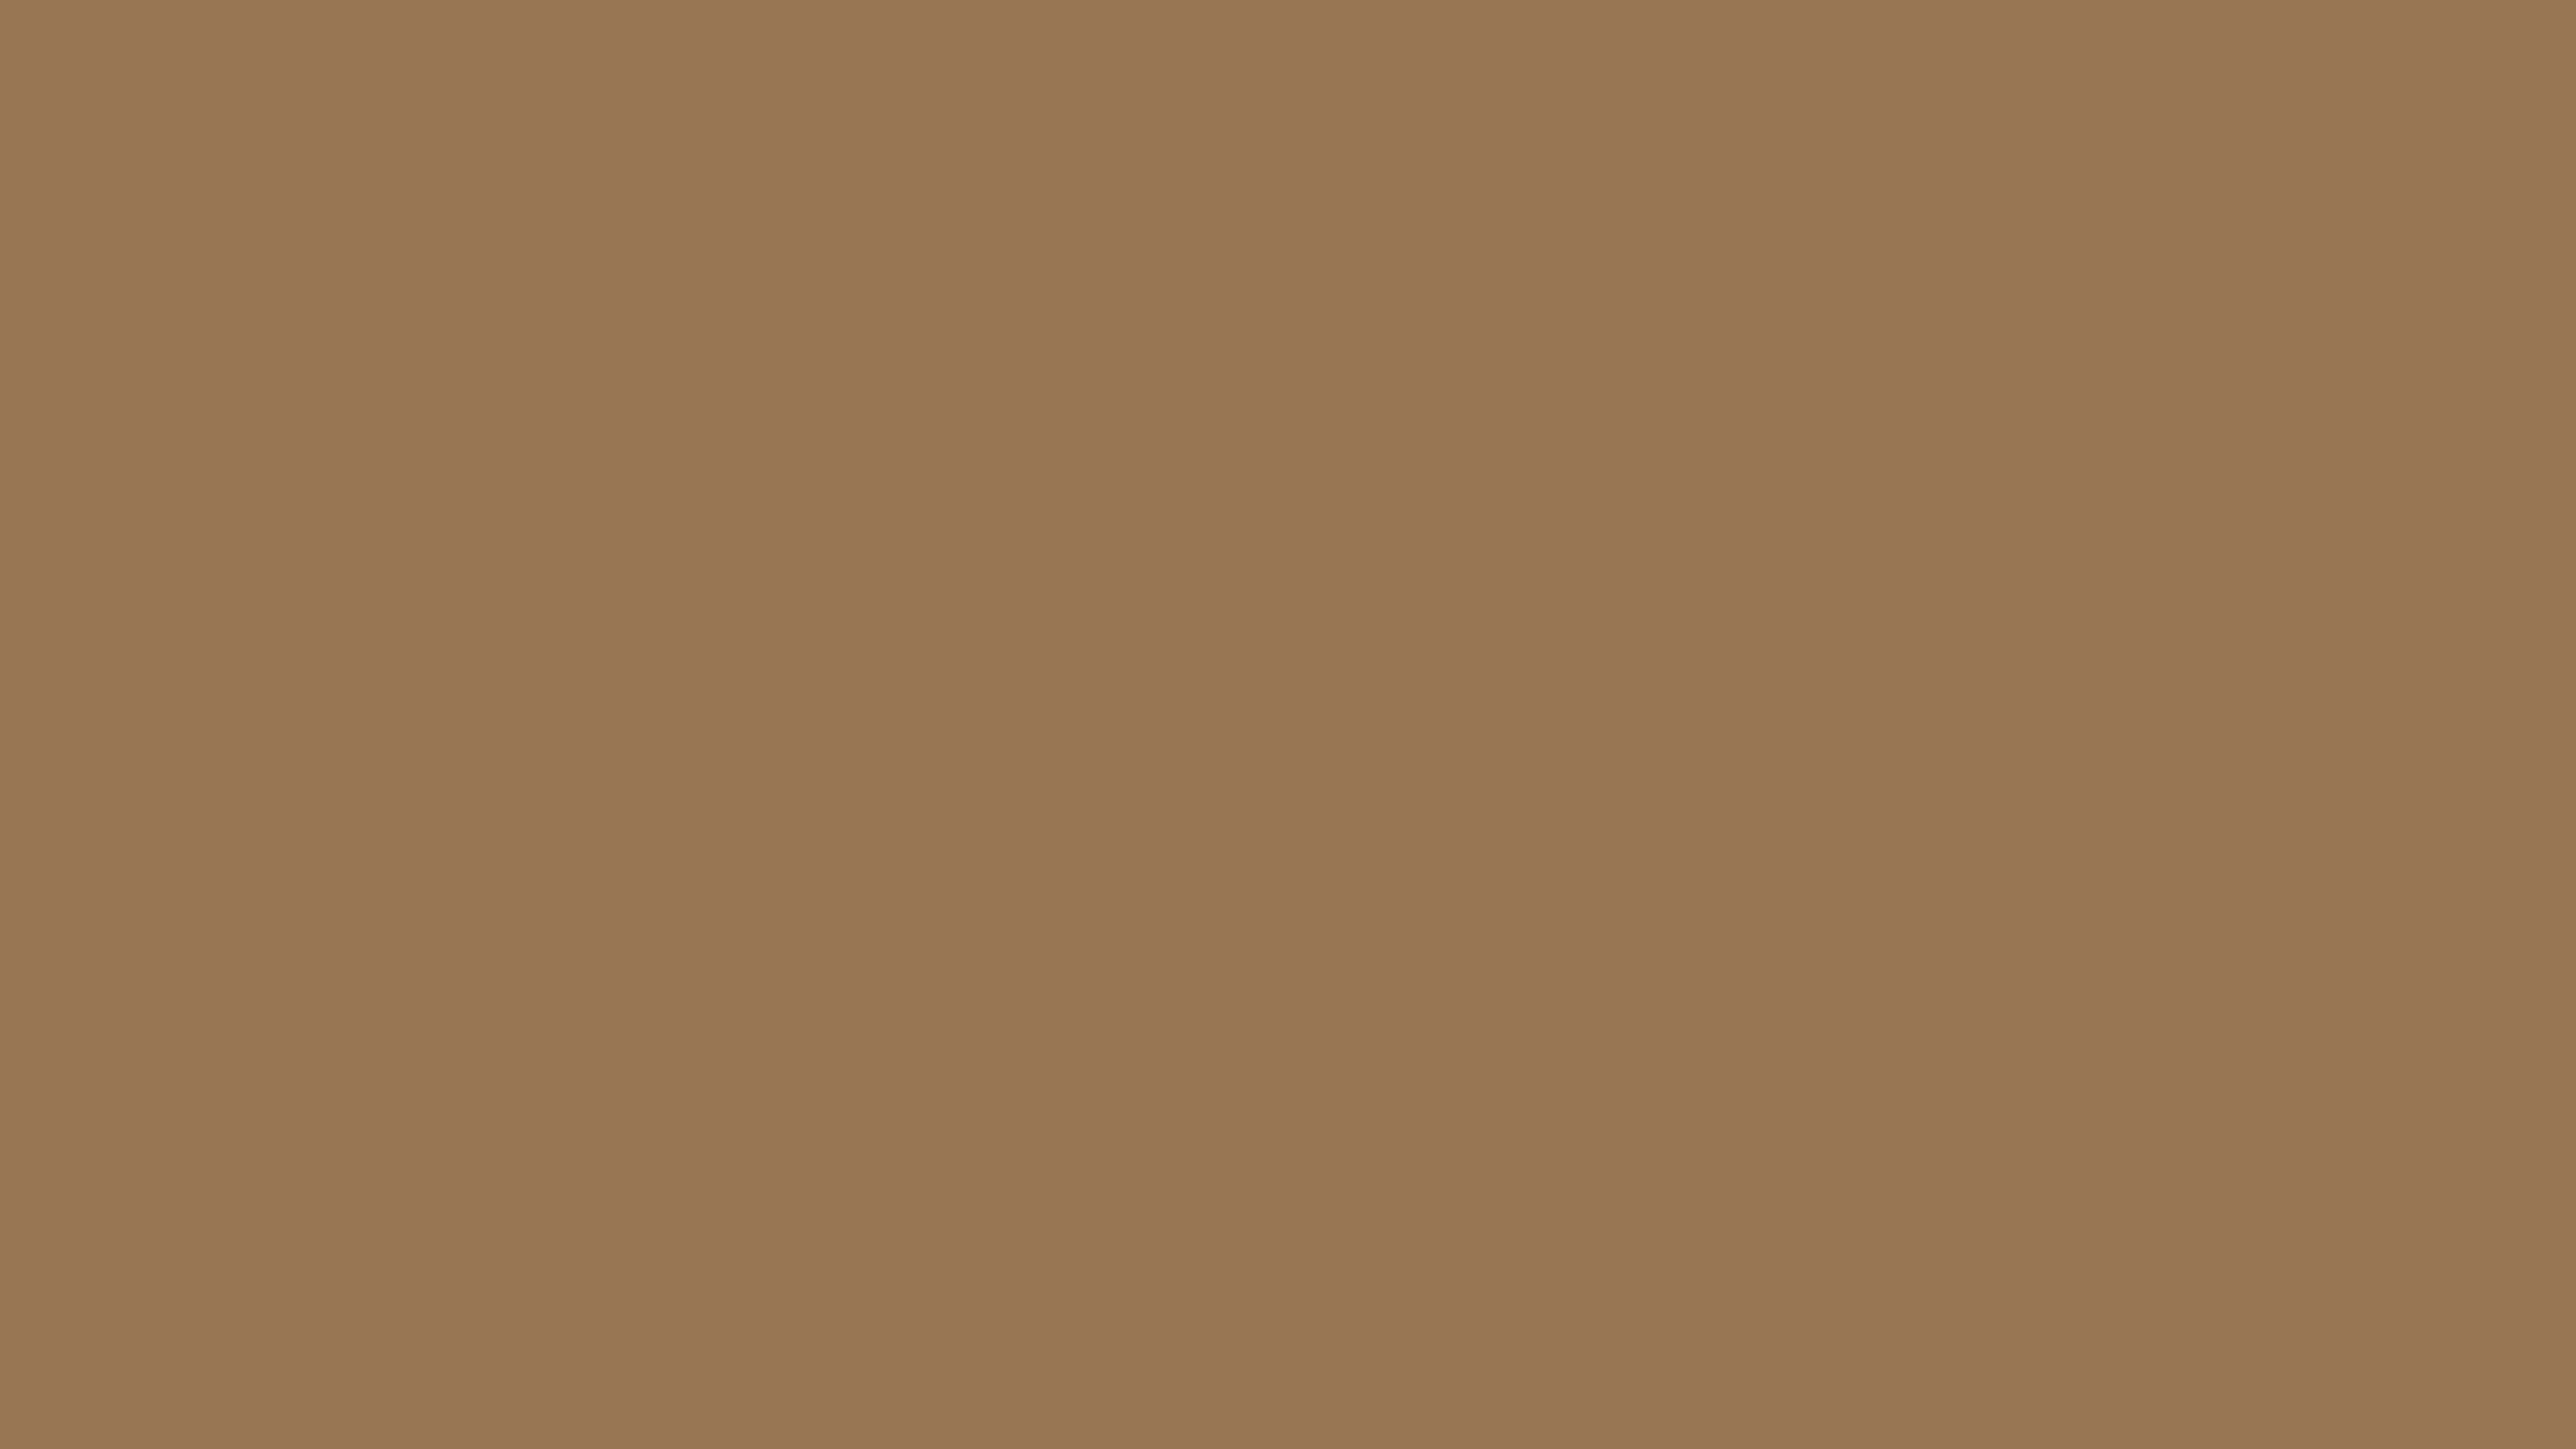 4096x2304 Pale Brown Solid Color Background